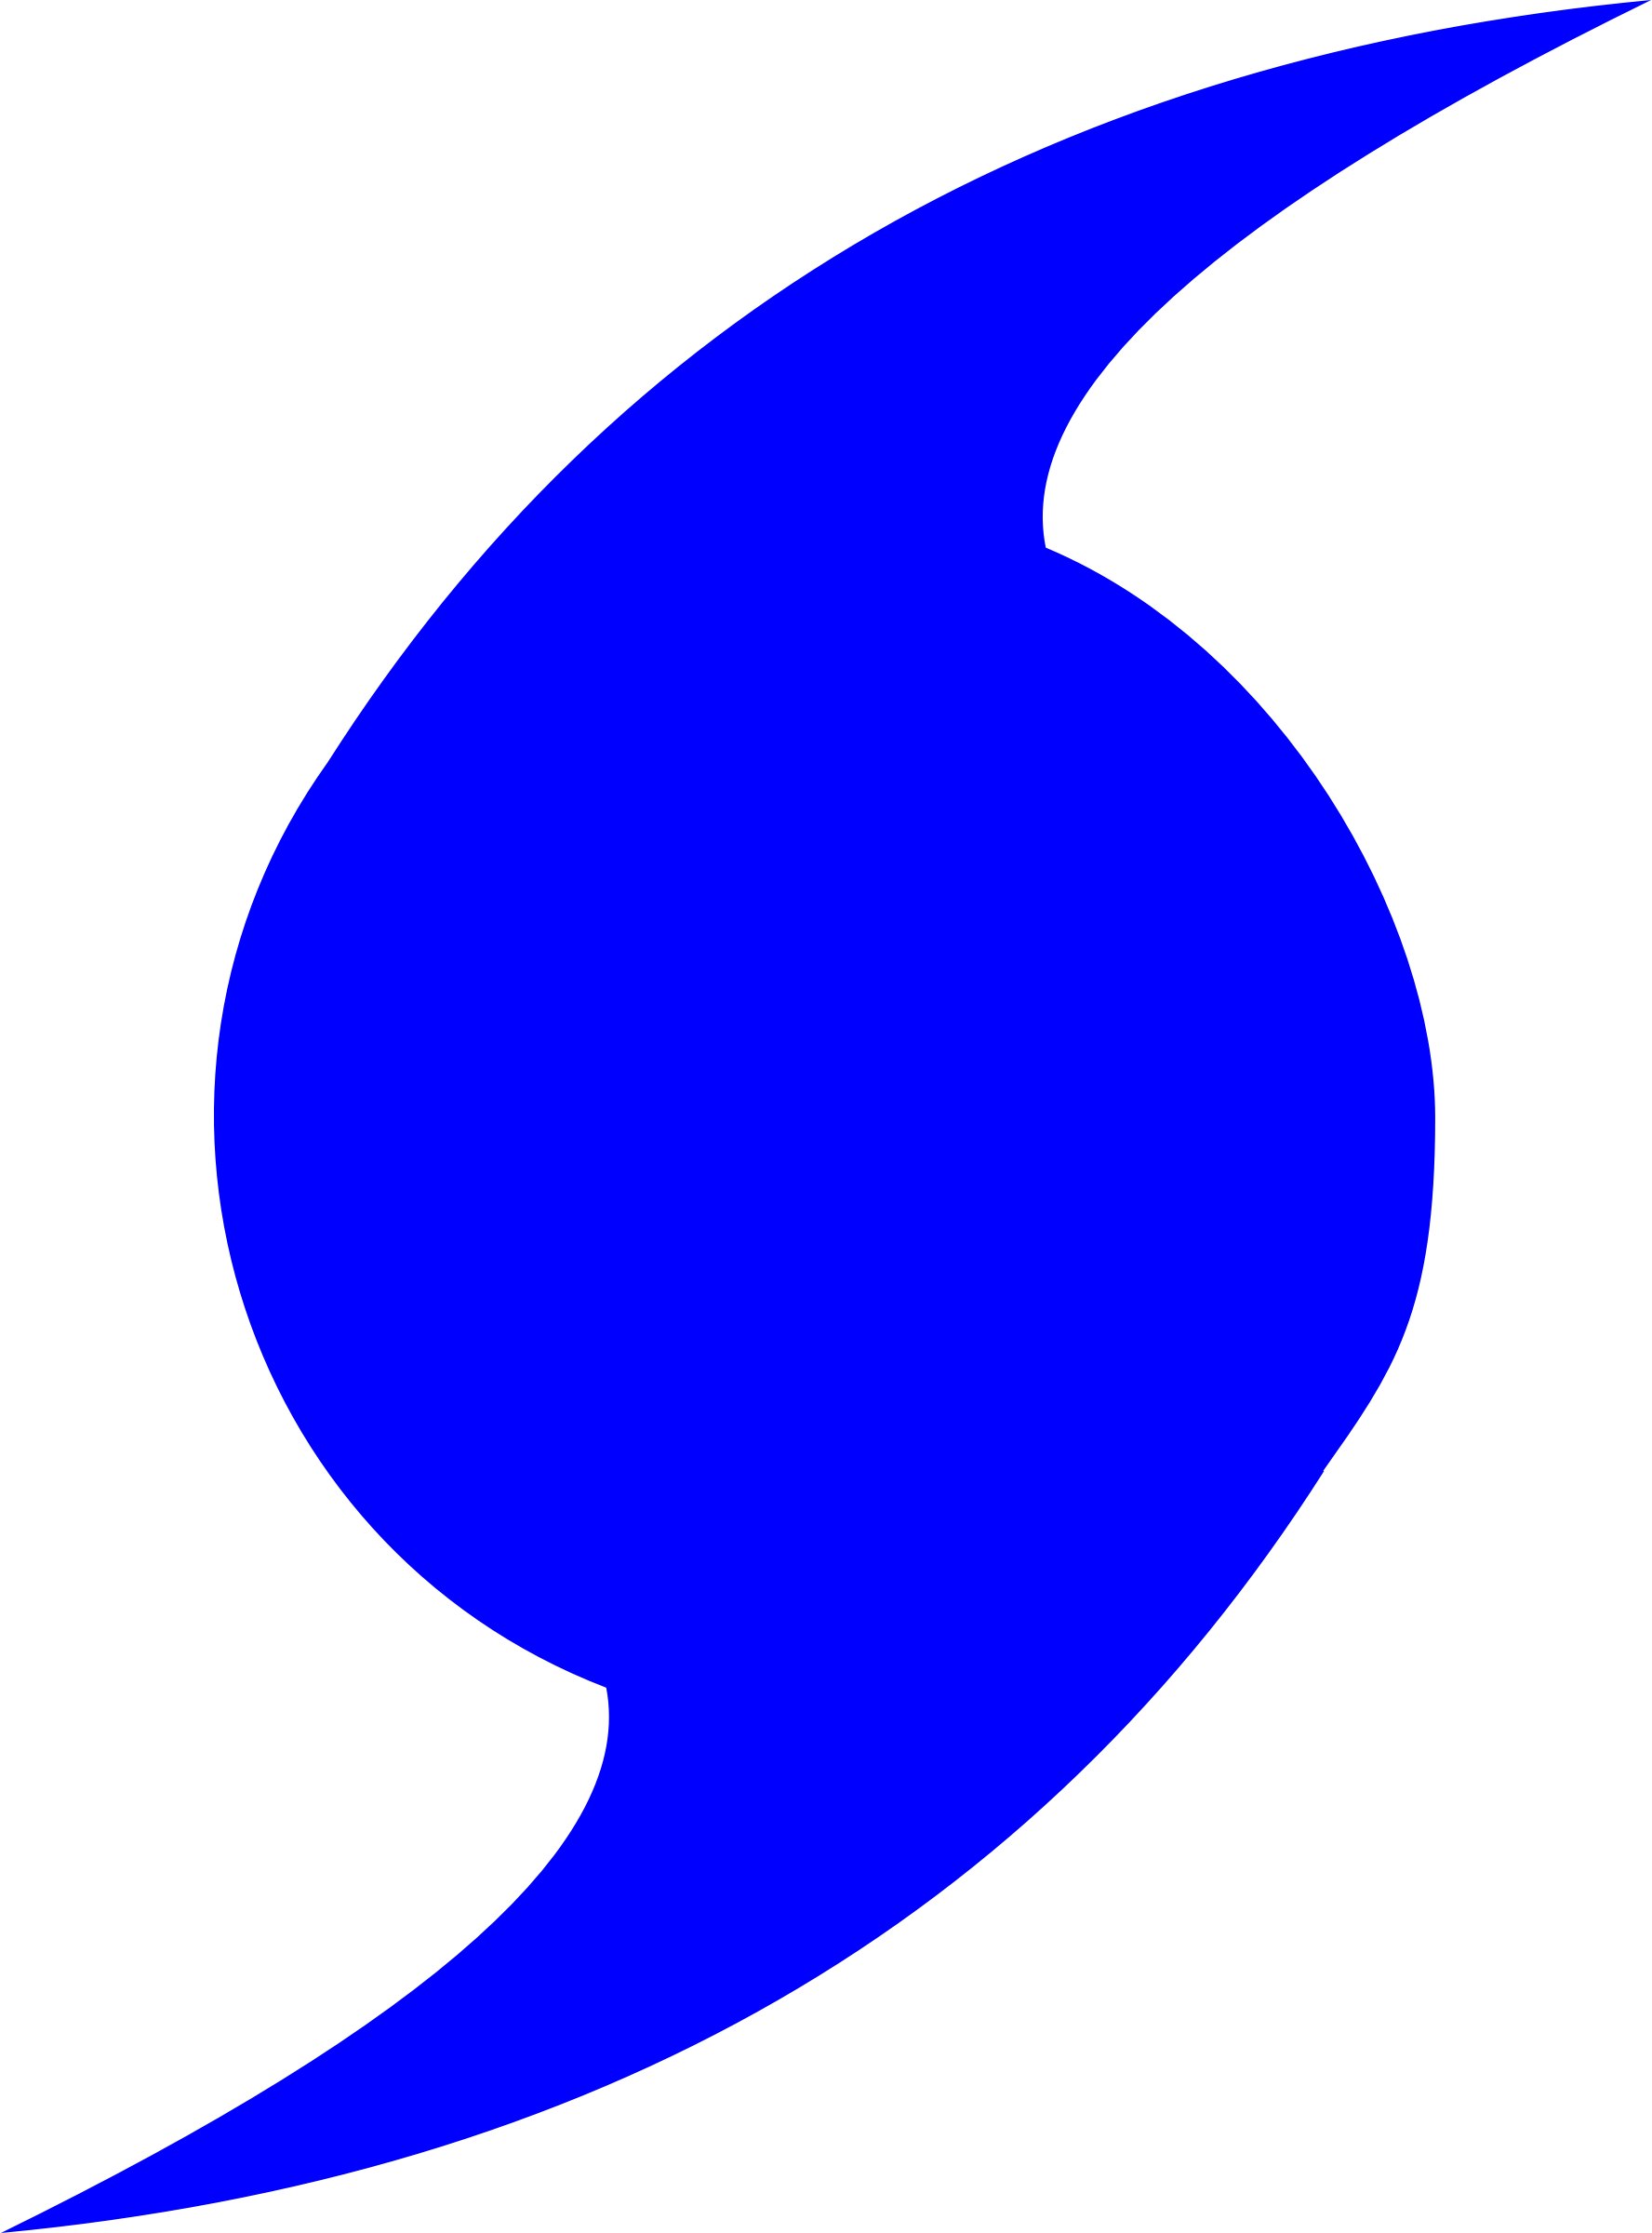 Blue symbol pictures transparentpng. Hurricane clipart extreme weather